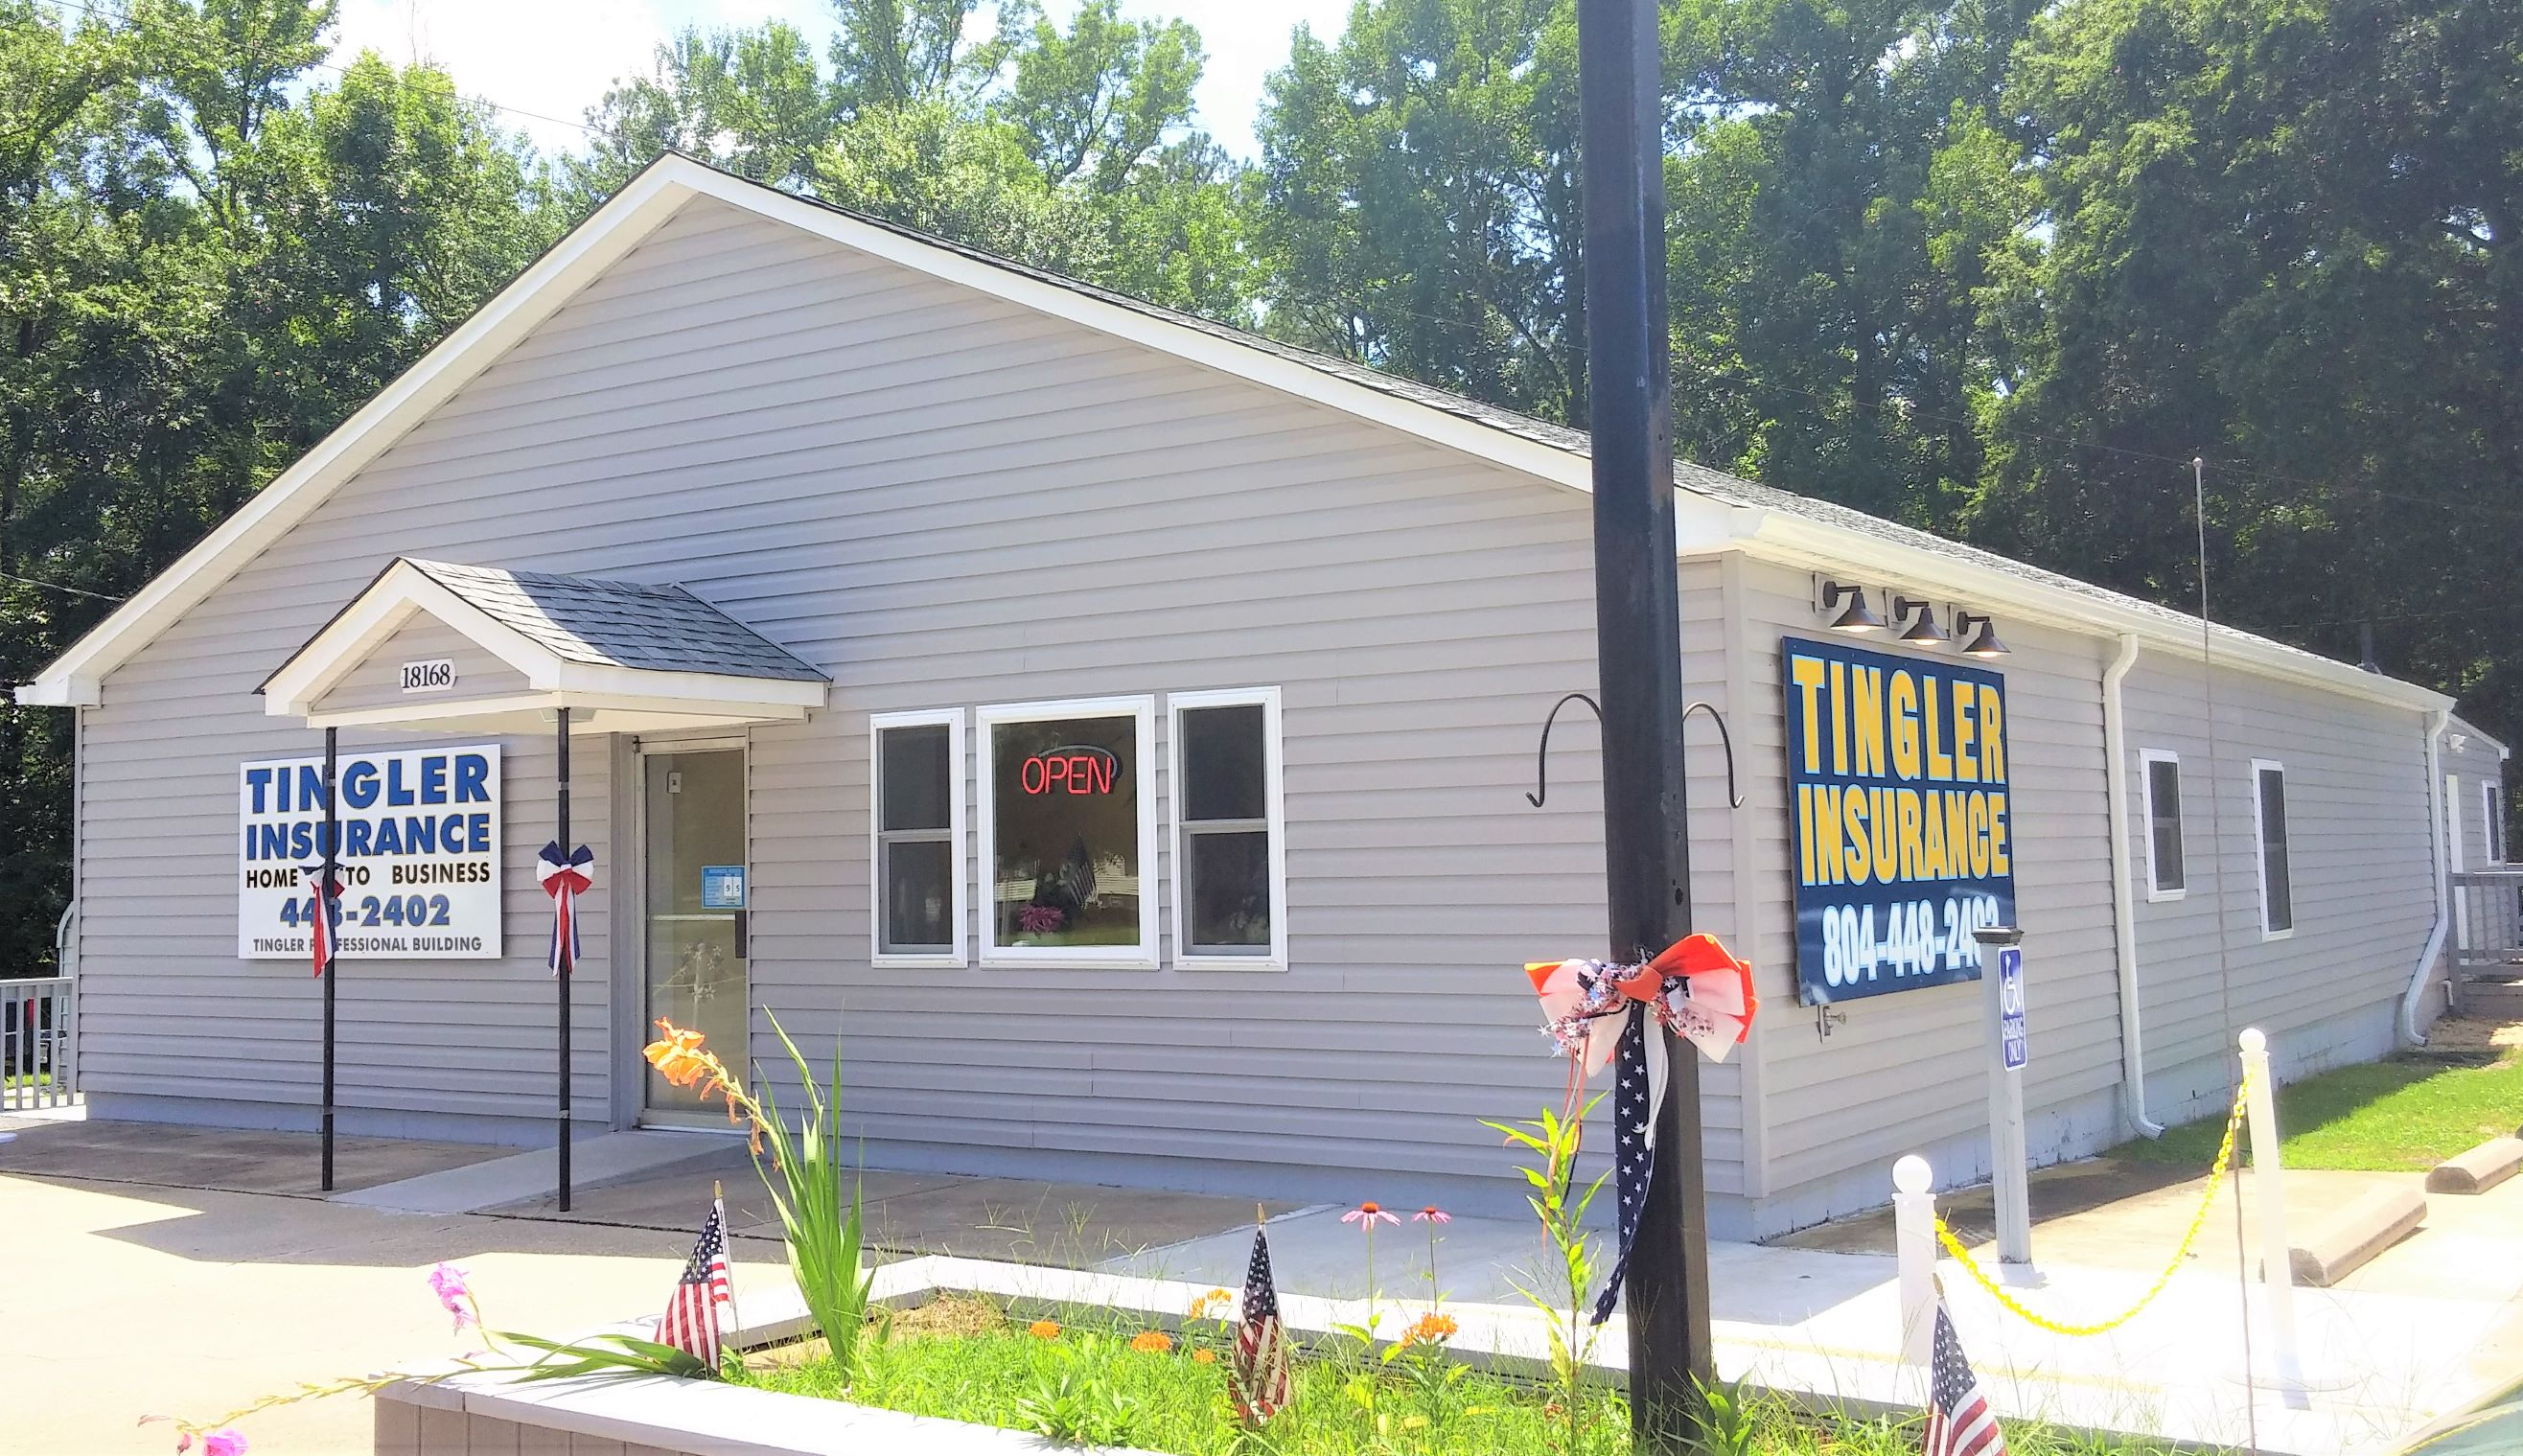 Tingler Professional Building